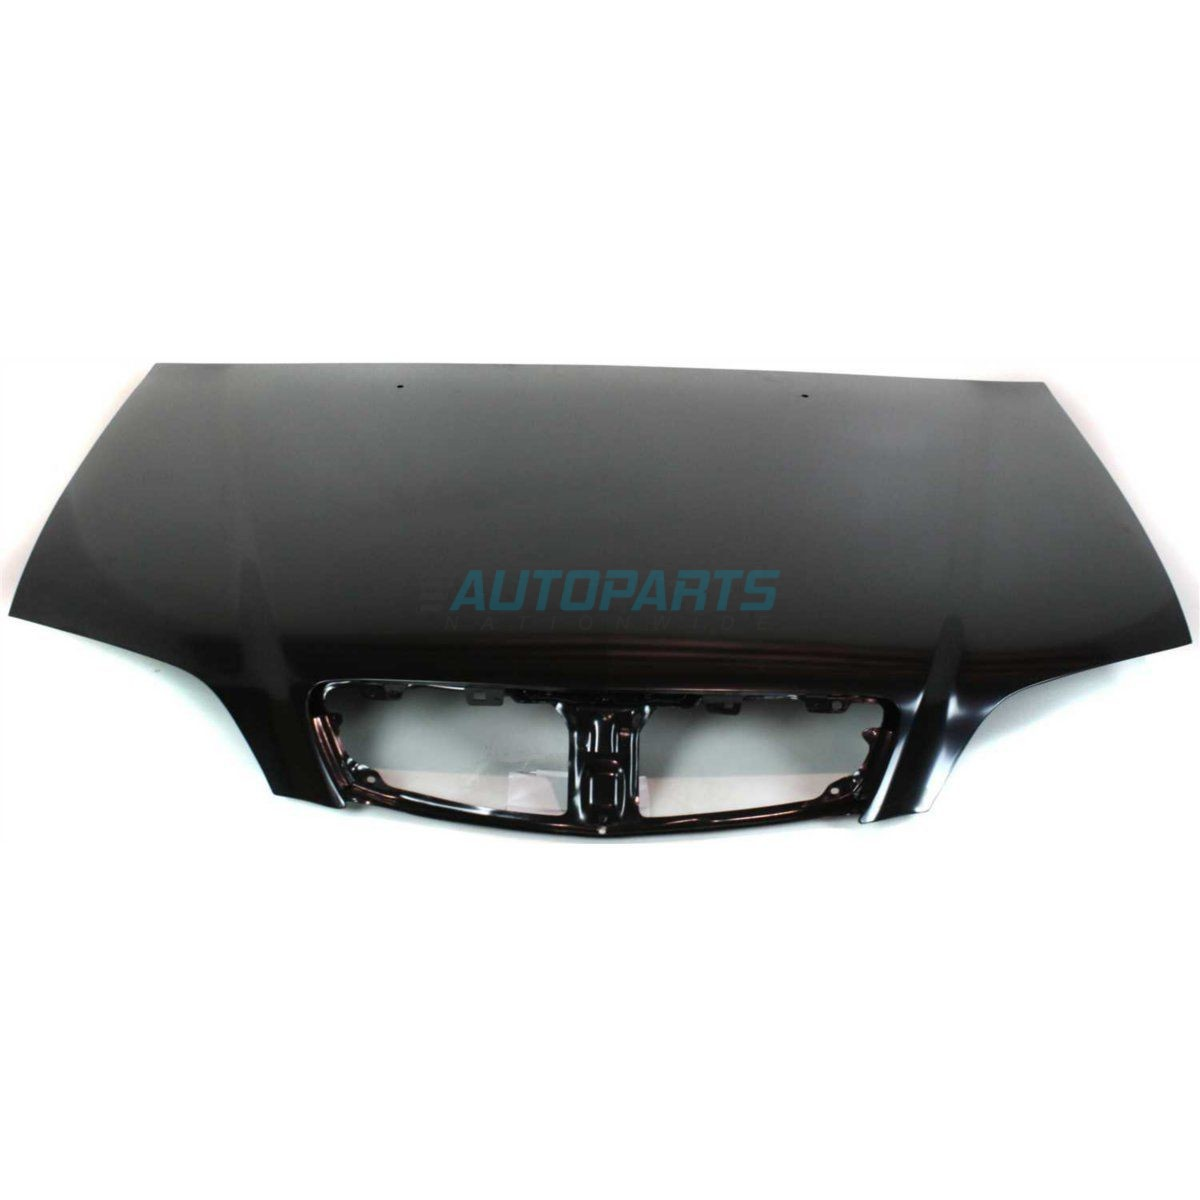 NEW FRONT HOOD PANEL FITS 1999-2000 ACURA TL AC1230108